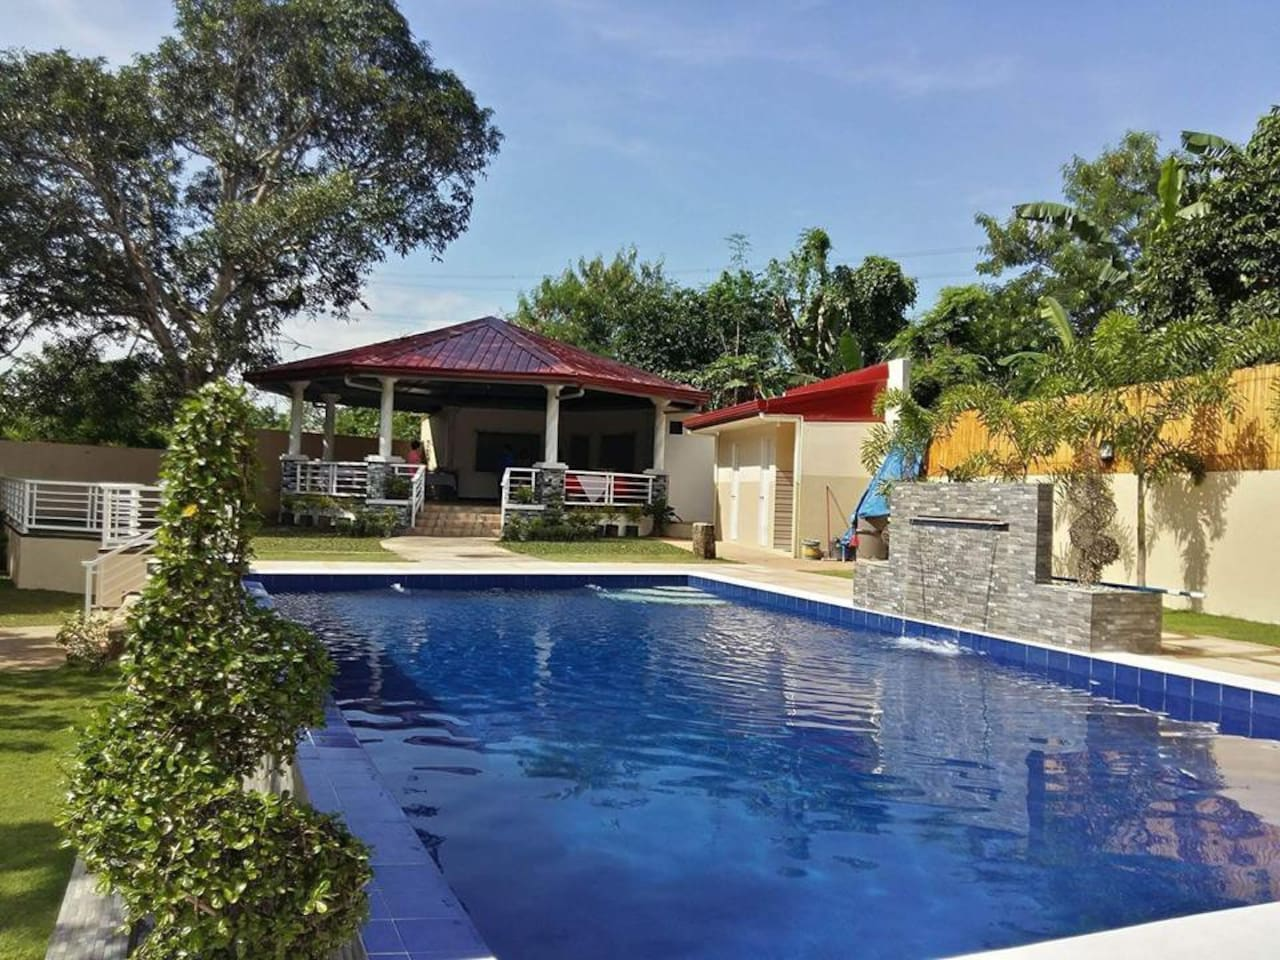 house with pool/garden/events place near tagaytay - holiday homes